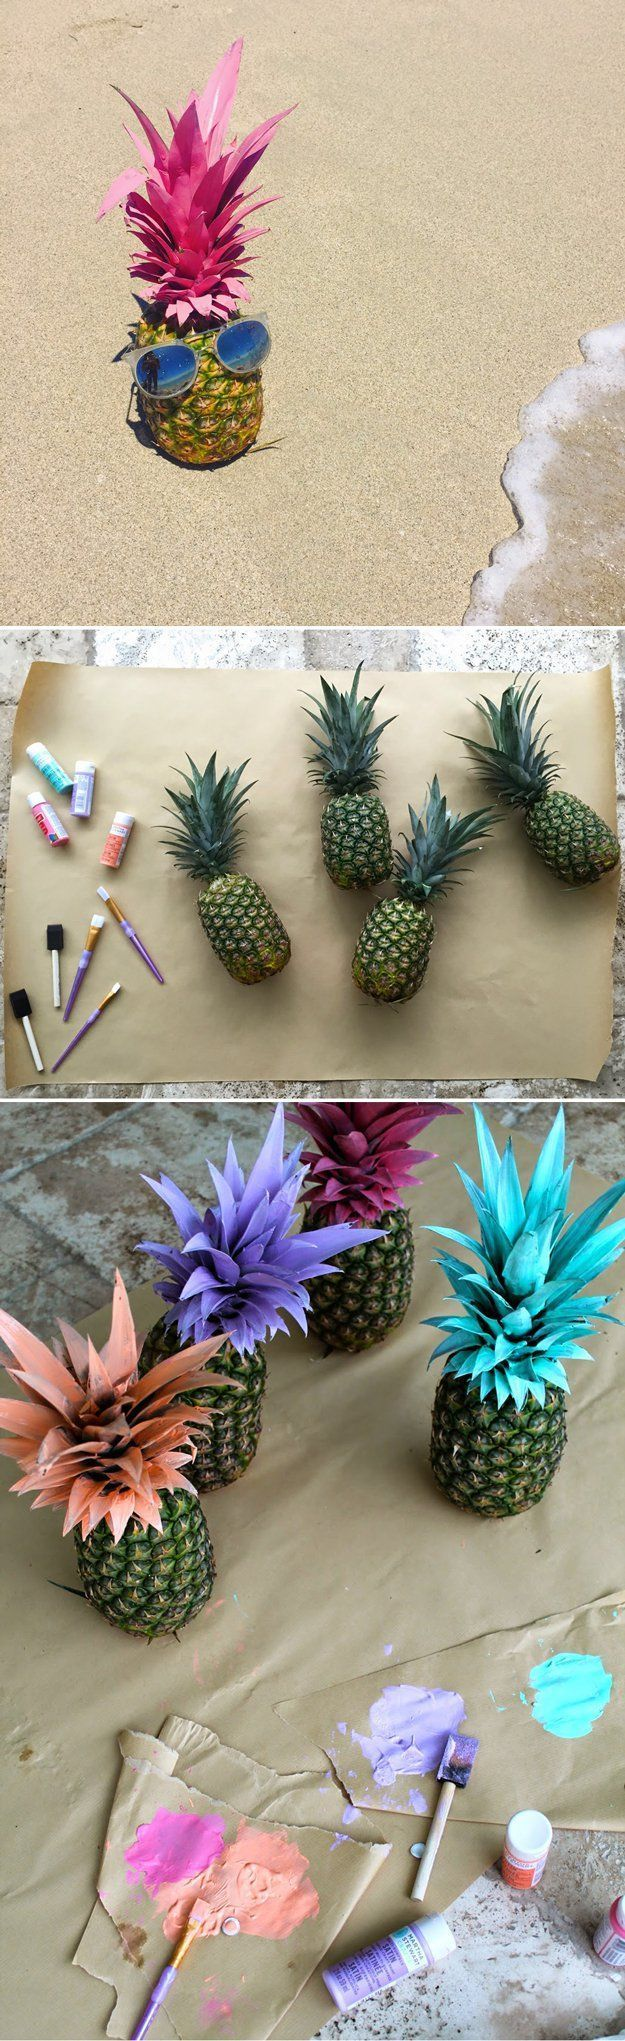 diy beach theme wedding centerpieces%0A DIY Beach Party Ideas For Your BeachThemed Celebration